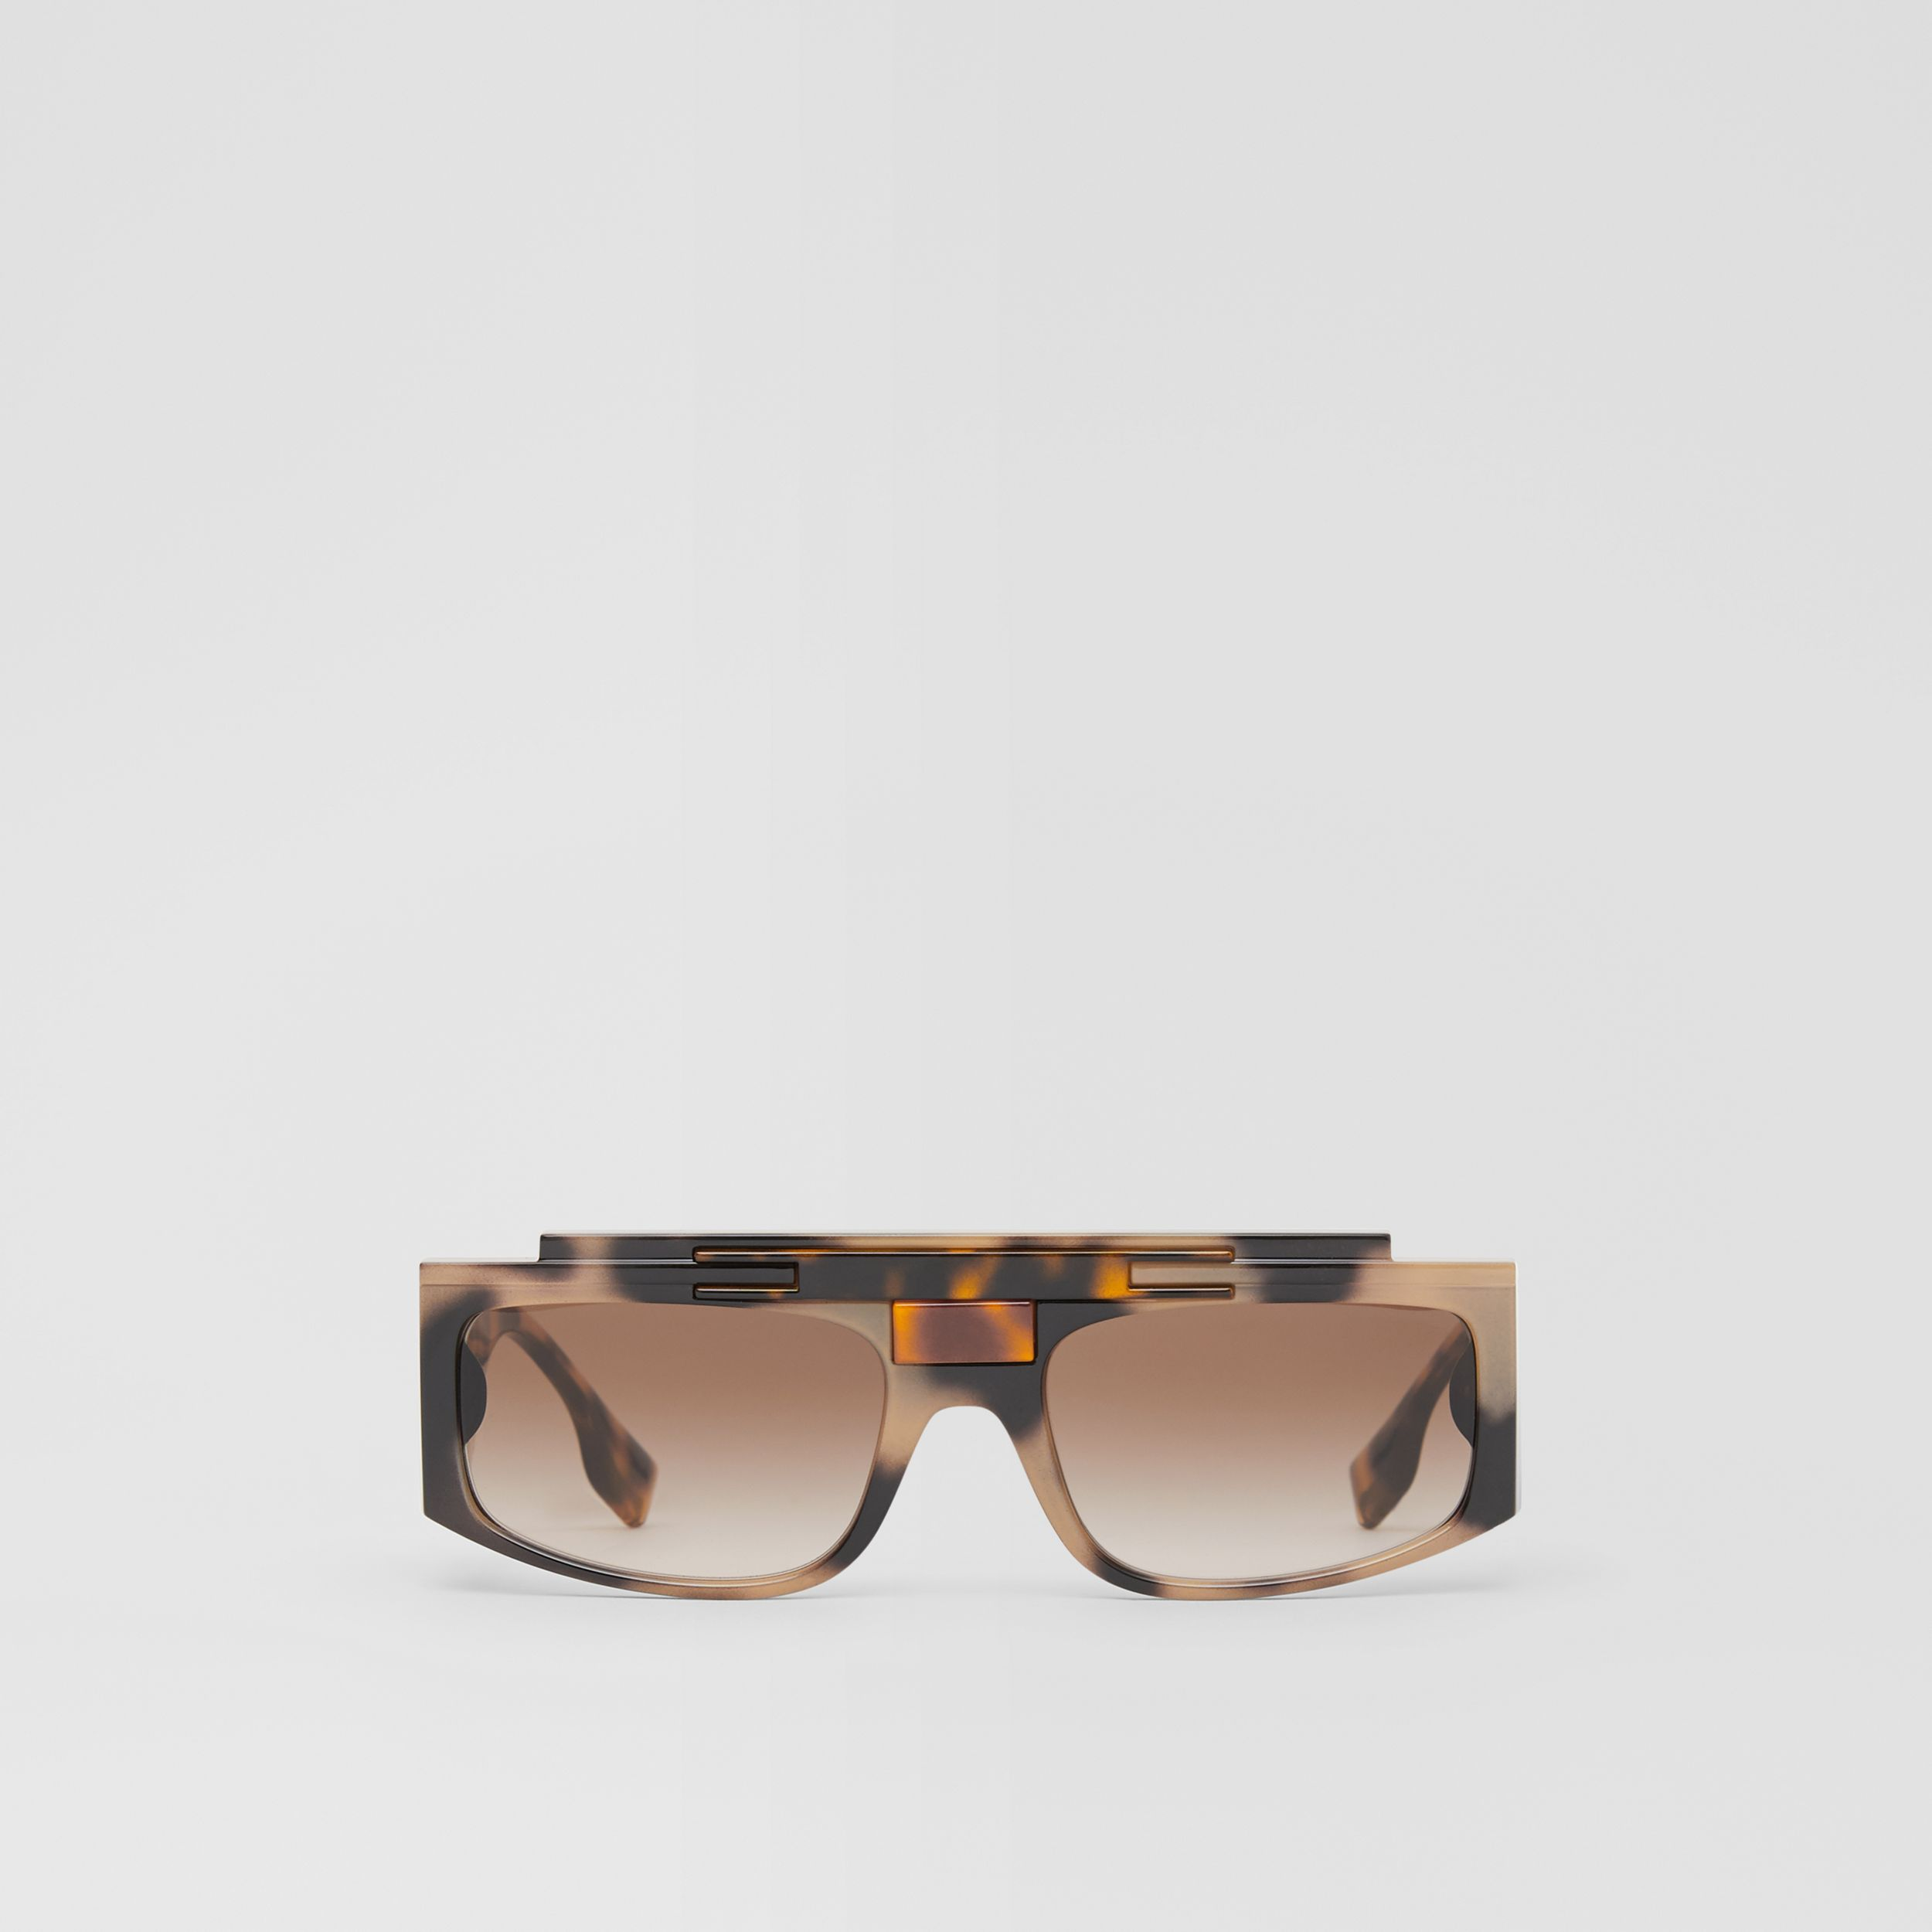 Rectangular Frame Sunglasses in Tortoiseshell - Women | Burberry - 1